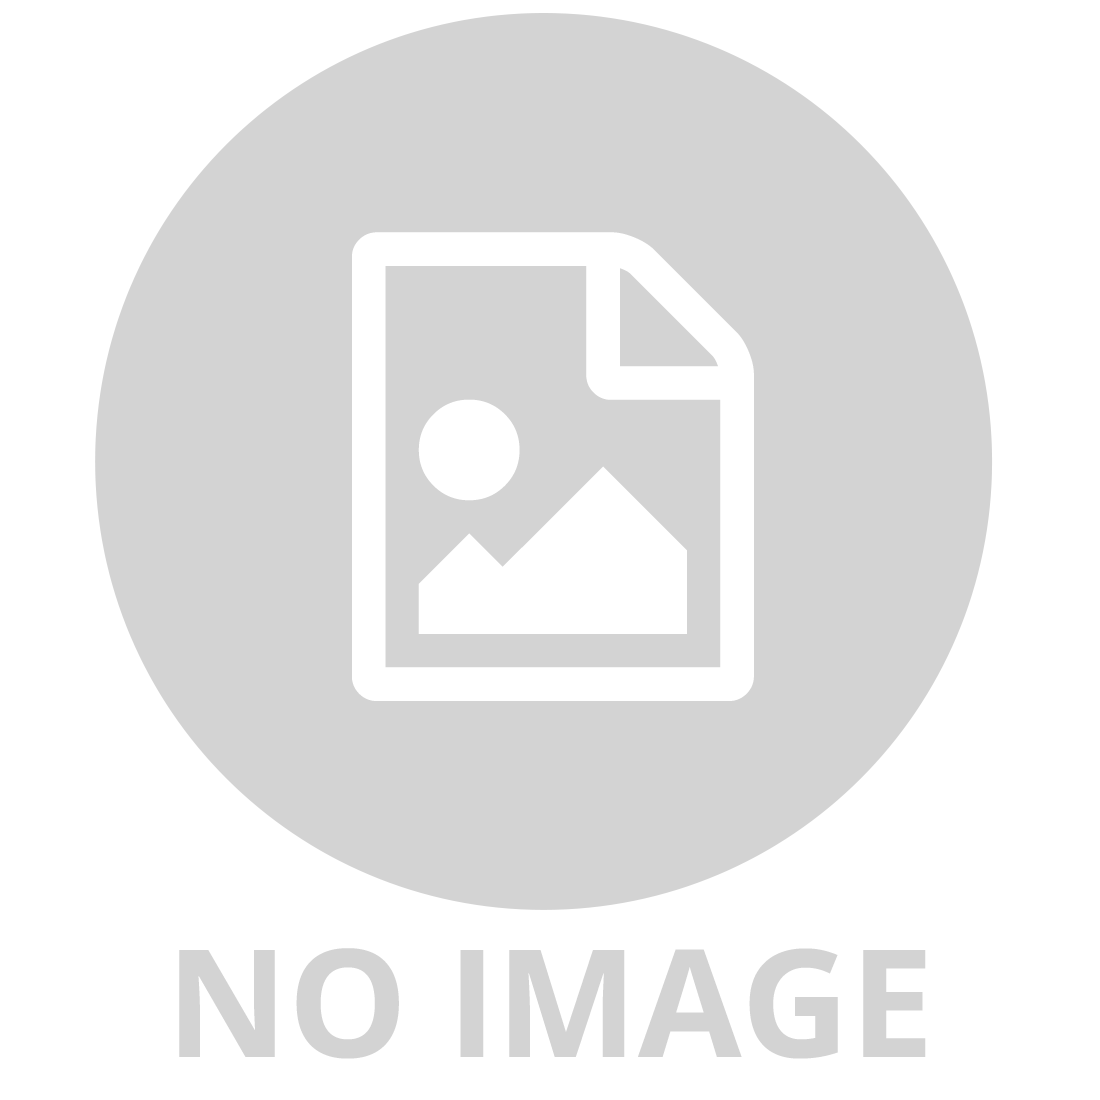 LEGO DISNEY PRINCESS 41160 ARIEL'S SEASIDE CASTLE